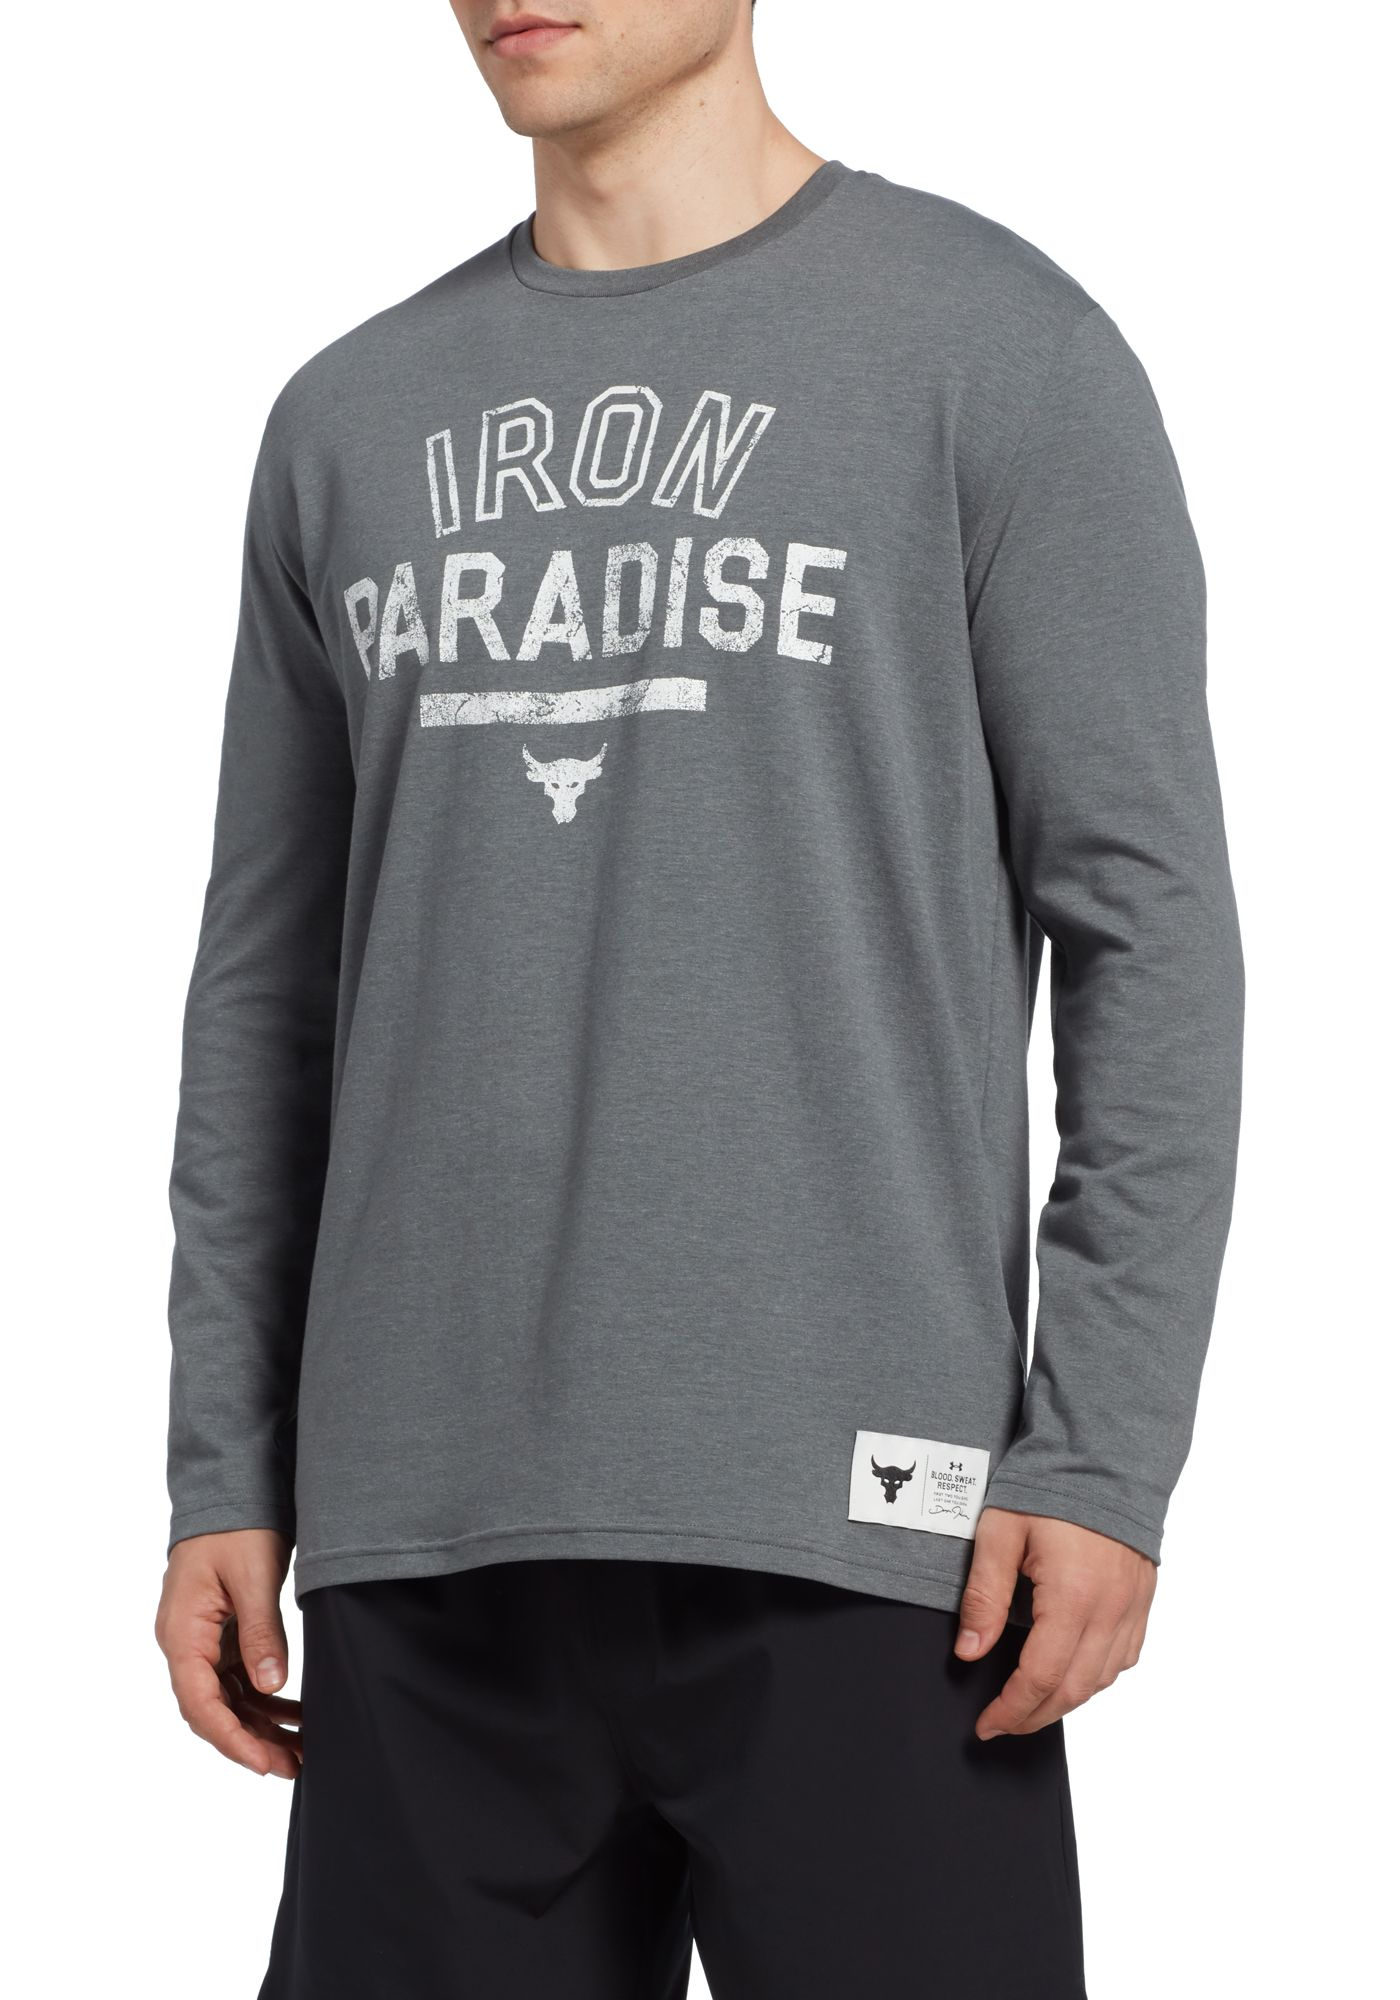 Under Armour Men's Project Rock Iron Paradise Graphic Long Sleeve Shirt